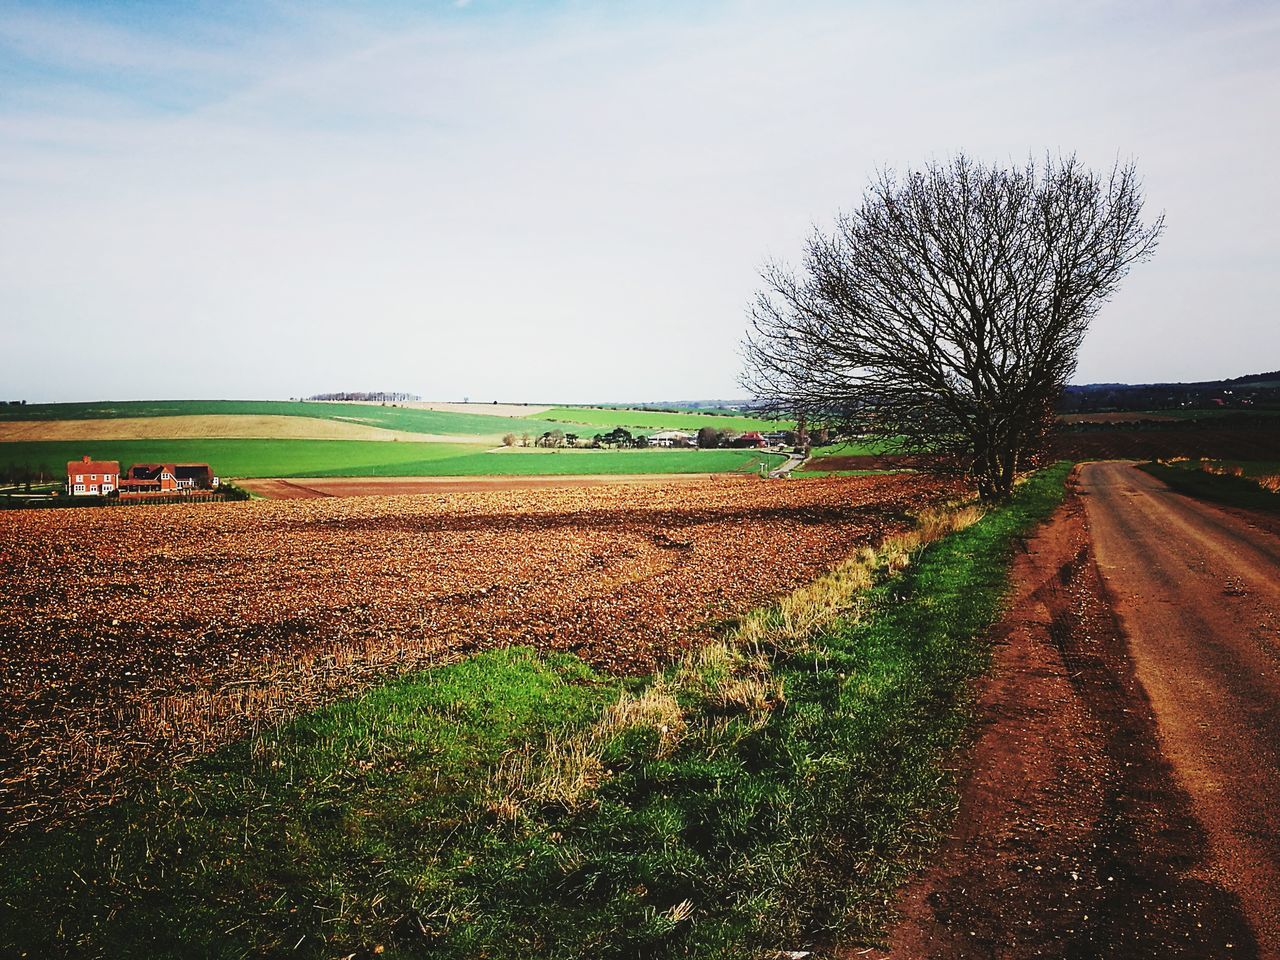 agriculture, field, rural scene, landscape, tranquil scene, nature, beauty in nature, tranquility, plough, scenics, sky, day, growth, no people, tree, bare tree, outdoors, plowed field